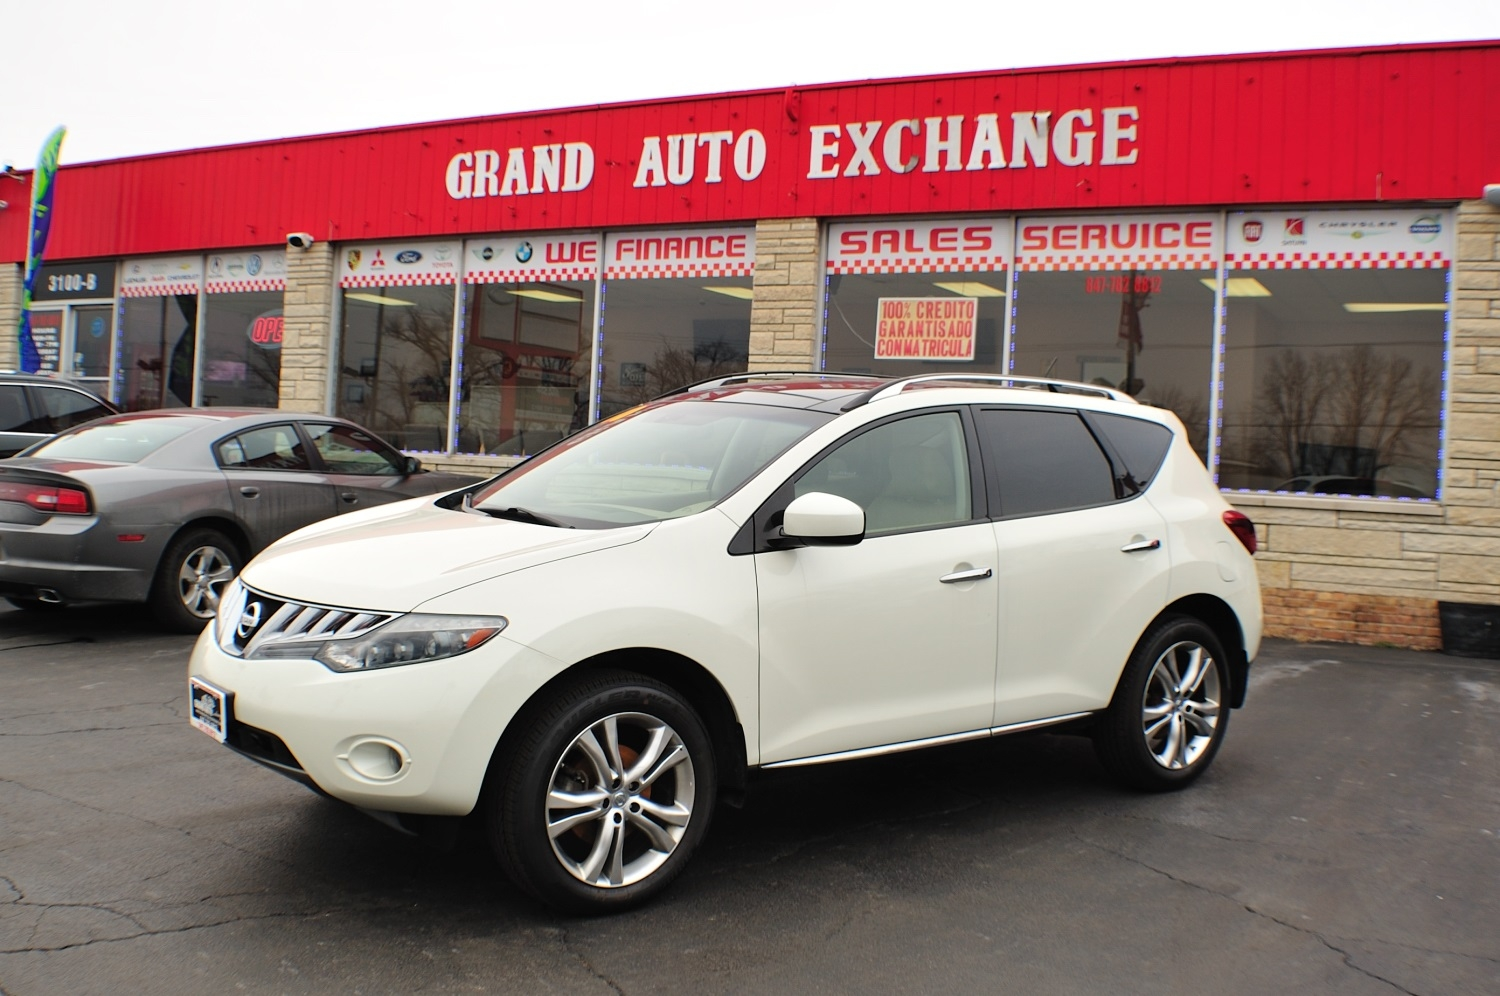 2010 nissan murano le awd white suv sale 2010 nissan murano le awd white suv sale antioch zion waukegan lake county illinois vanachro Image collections